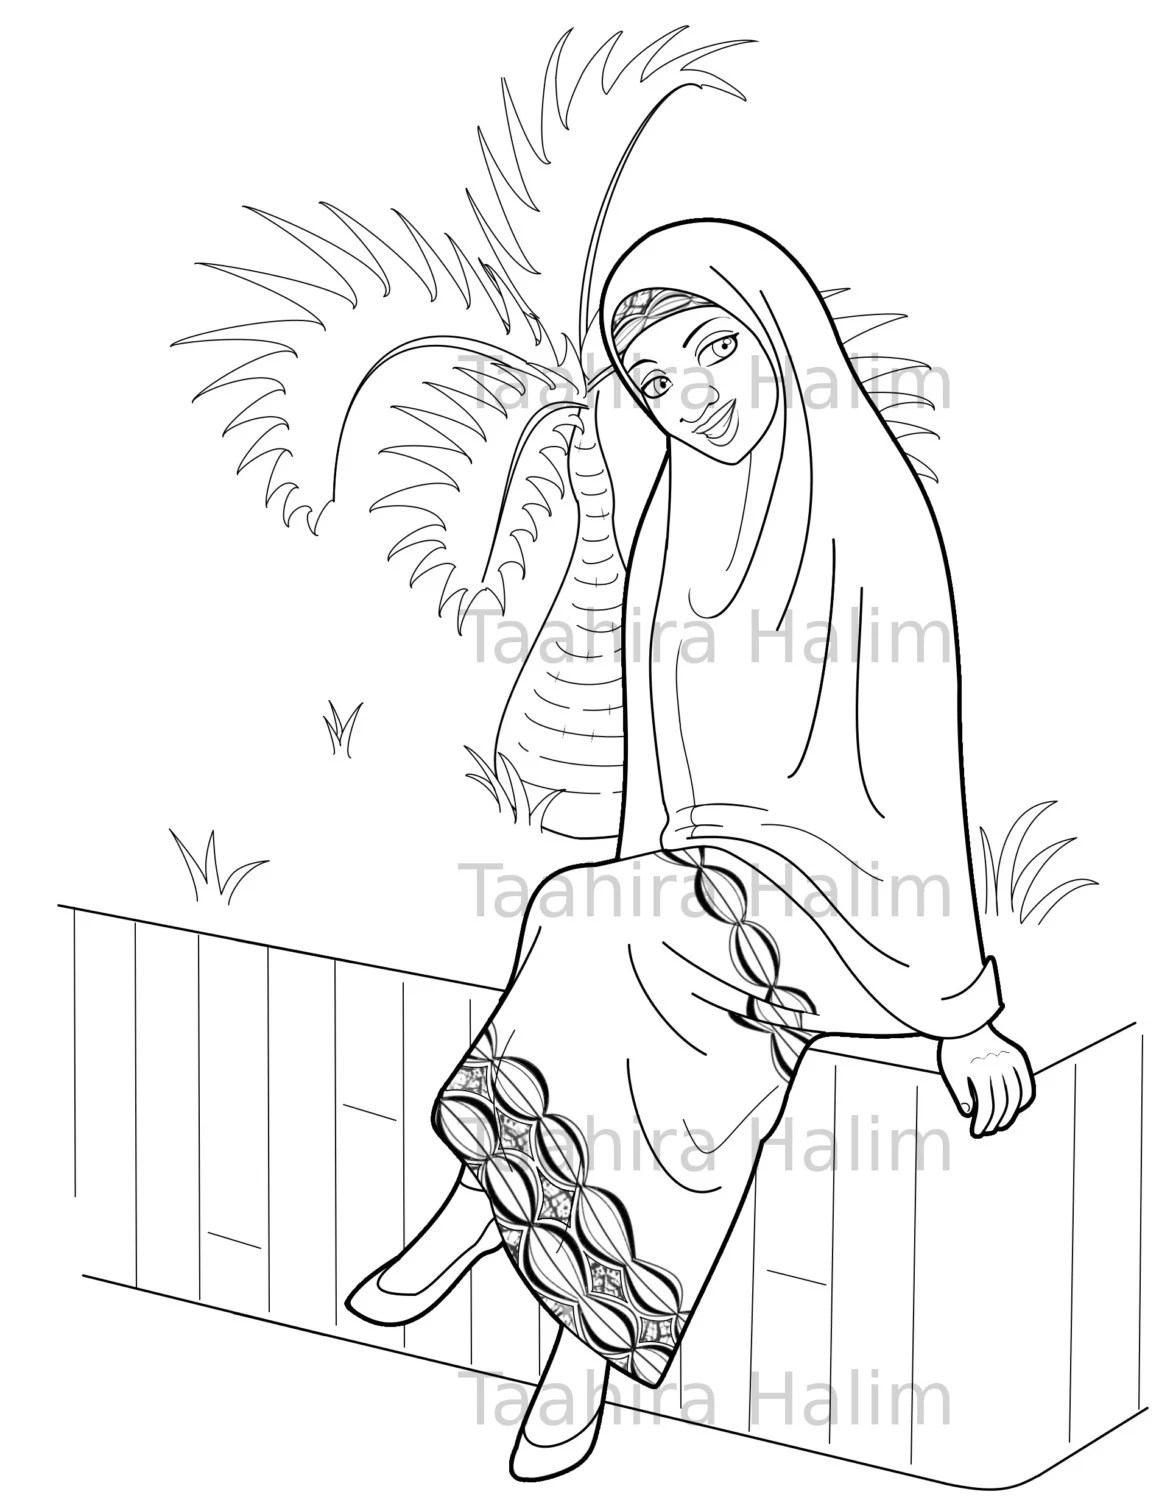 Muslim Hijabi Coloring Book Page Digital Download Muslimah